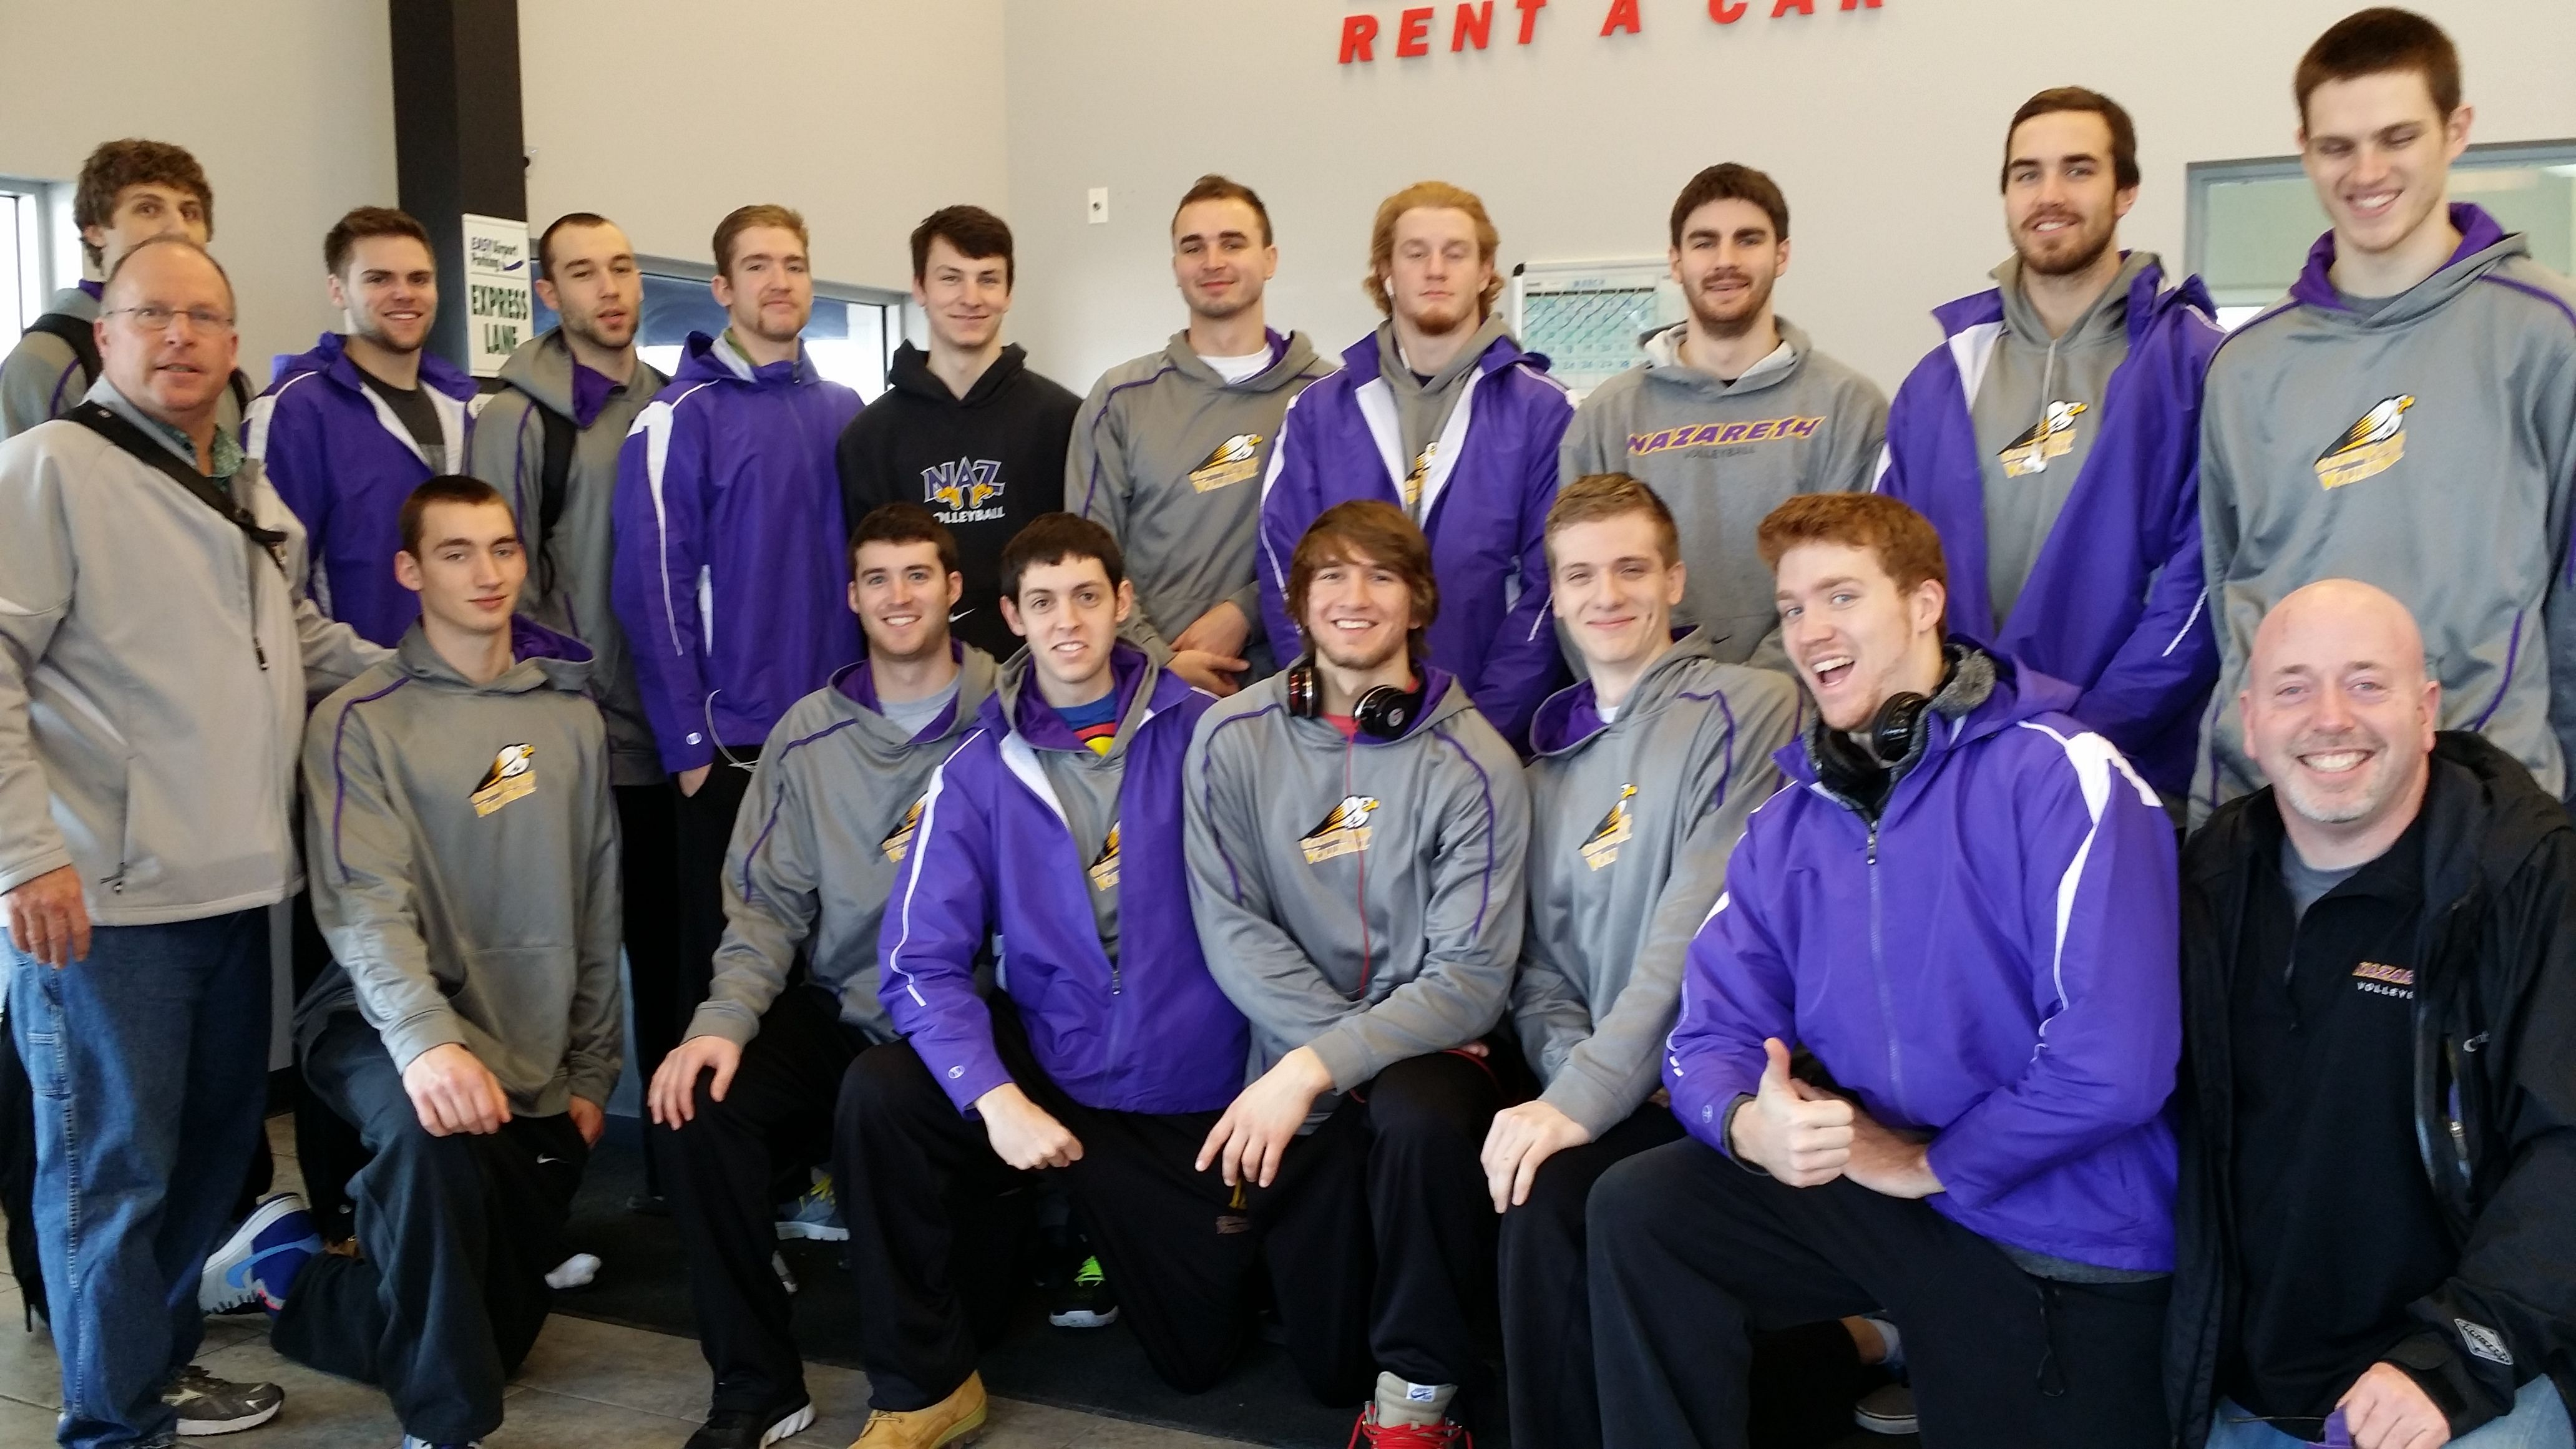 We Had The Pleasure Of Having The Nazareth College Men S Volleyball Team In Our Chicago Office We Wish Them T Mens Volleyball Volleyball Team Nazareth College